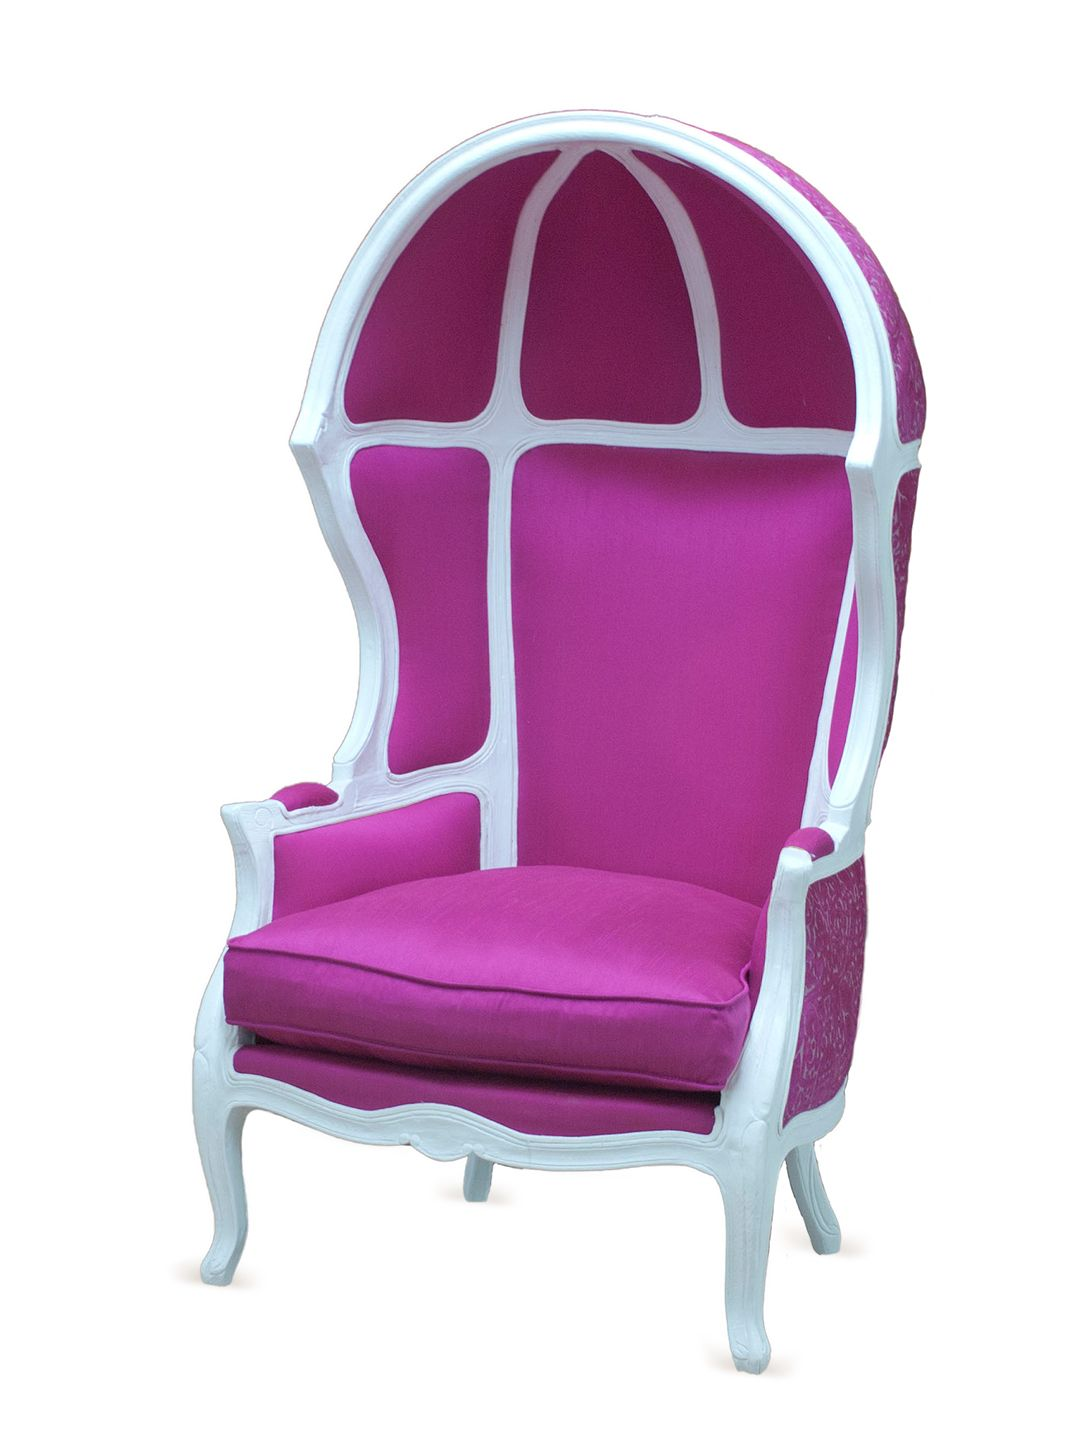 Garden armchair with armrests NAKED ENRICO by POLaRT